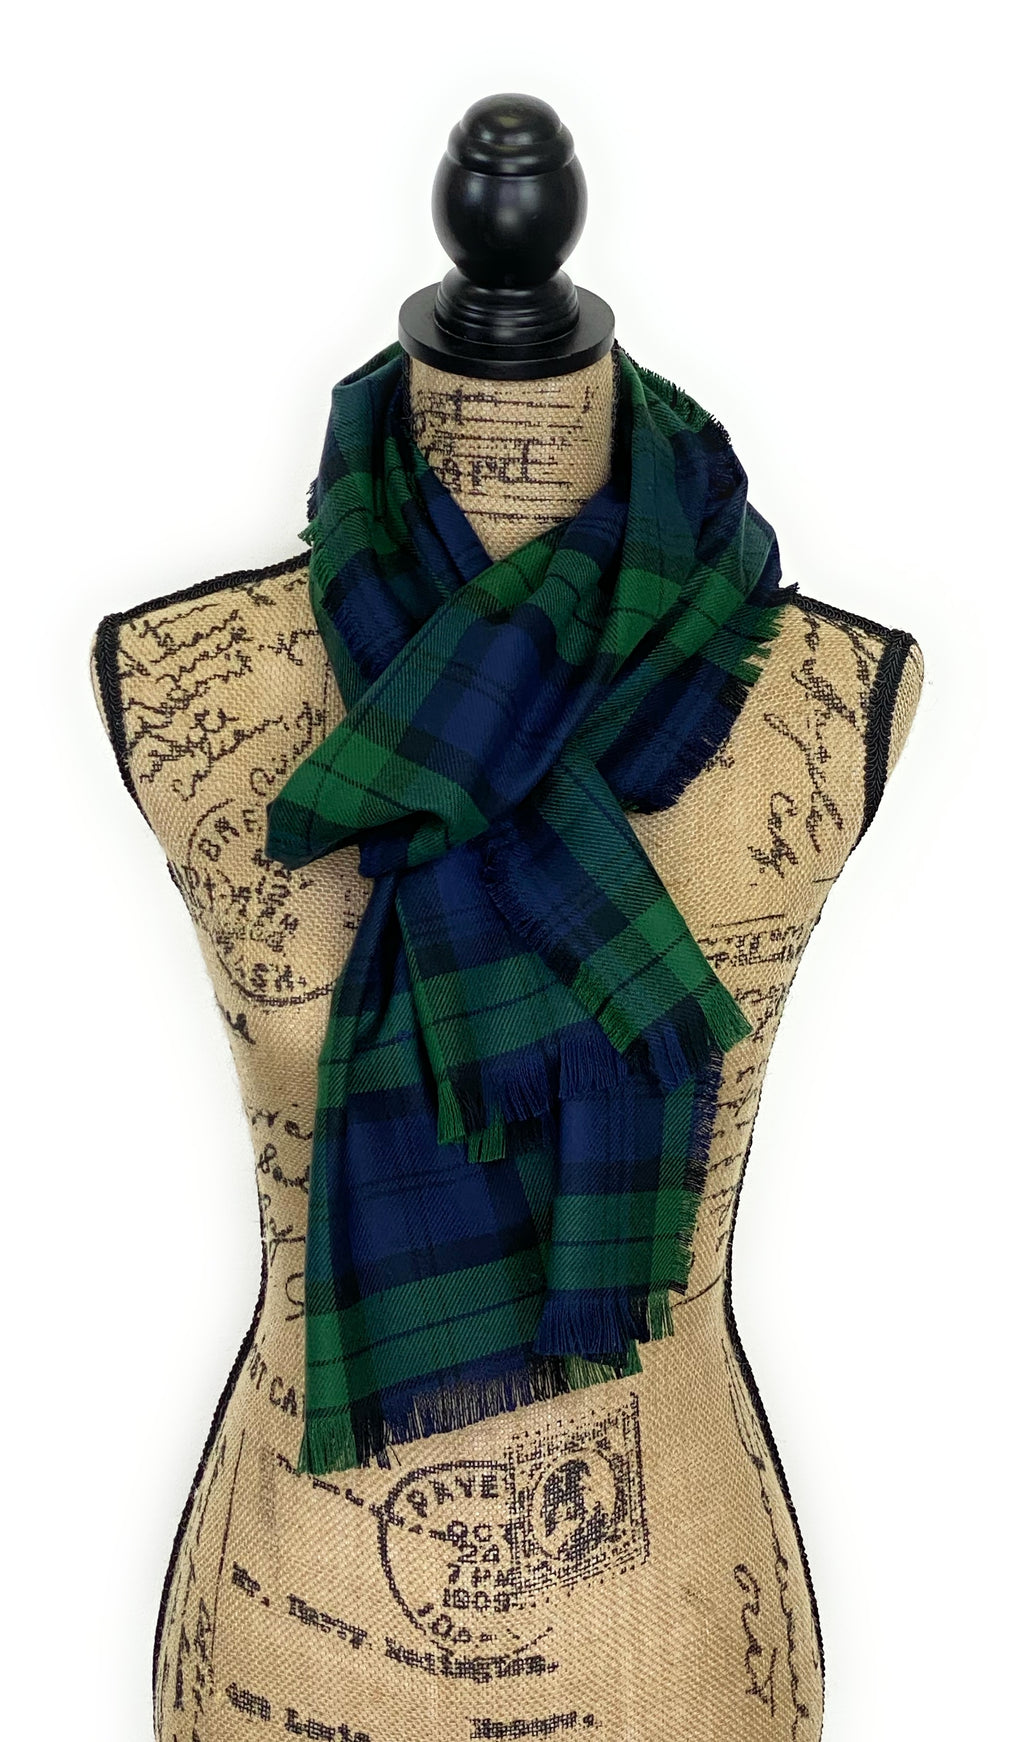 Black Watch Tartan Dark Green, Navy Blue, and Black Plaid Acrylic Scarf